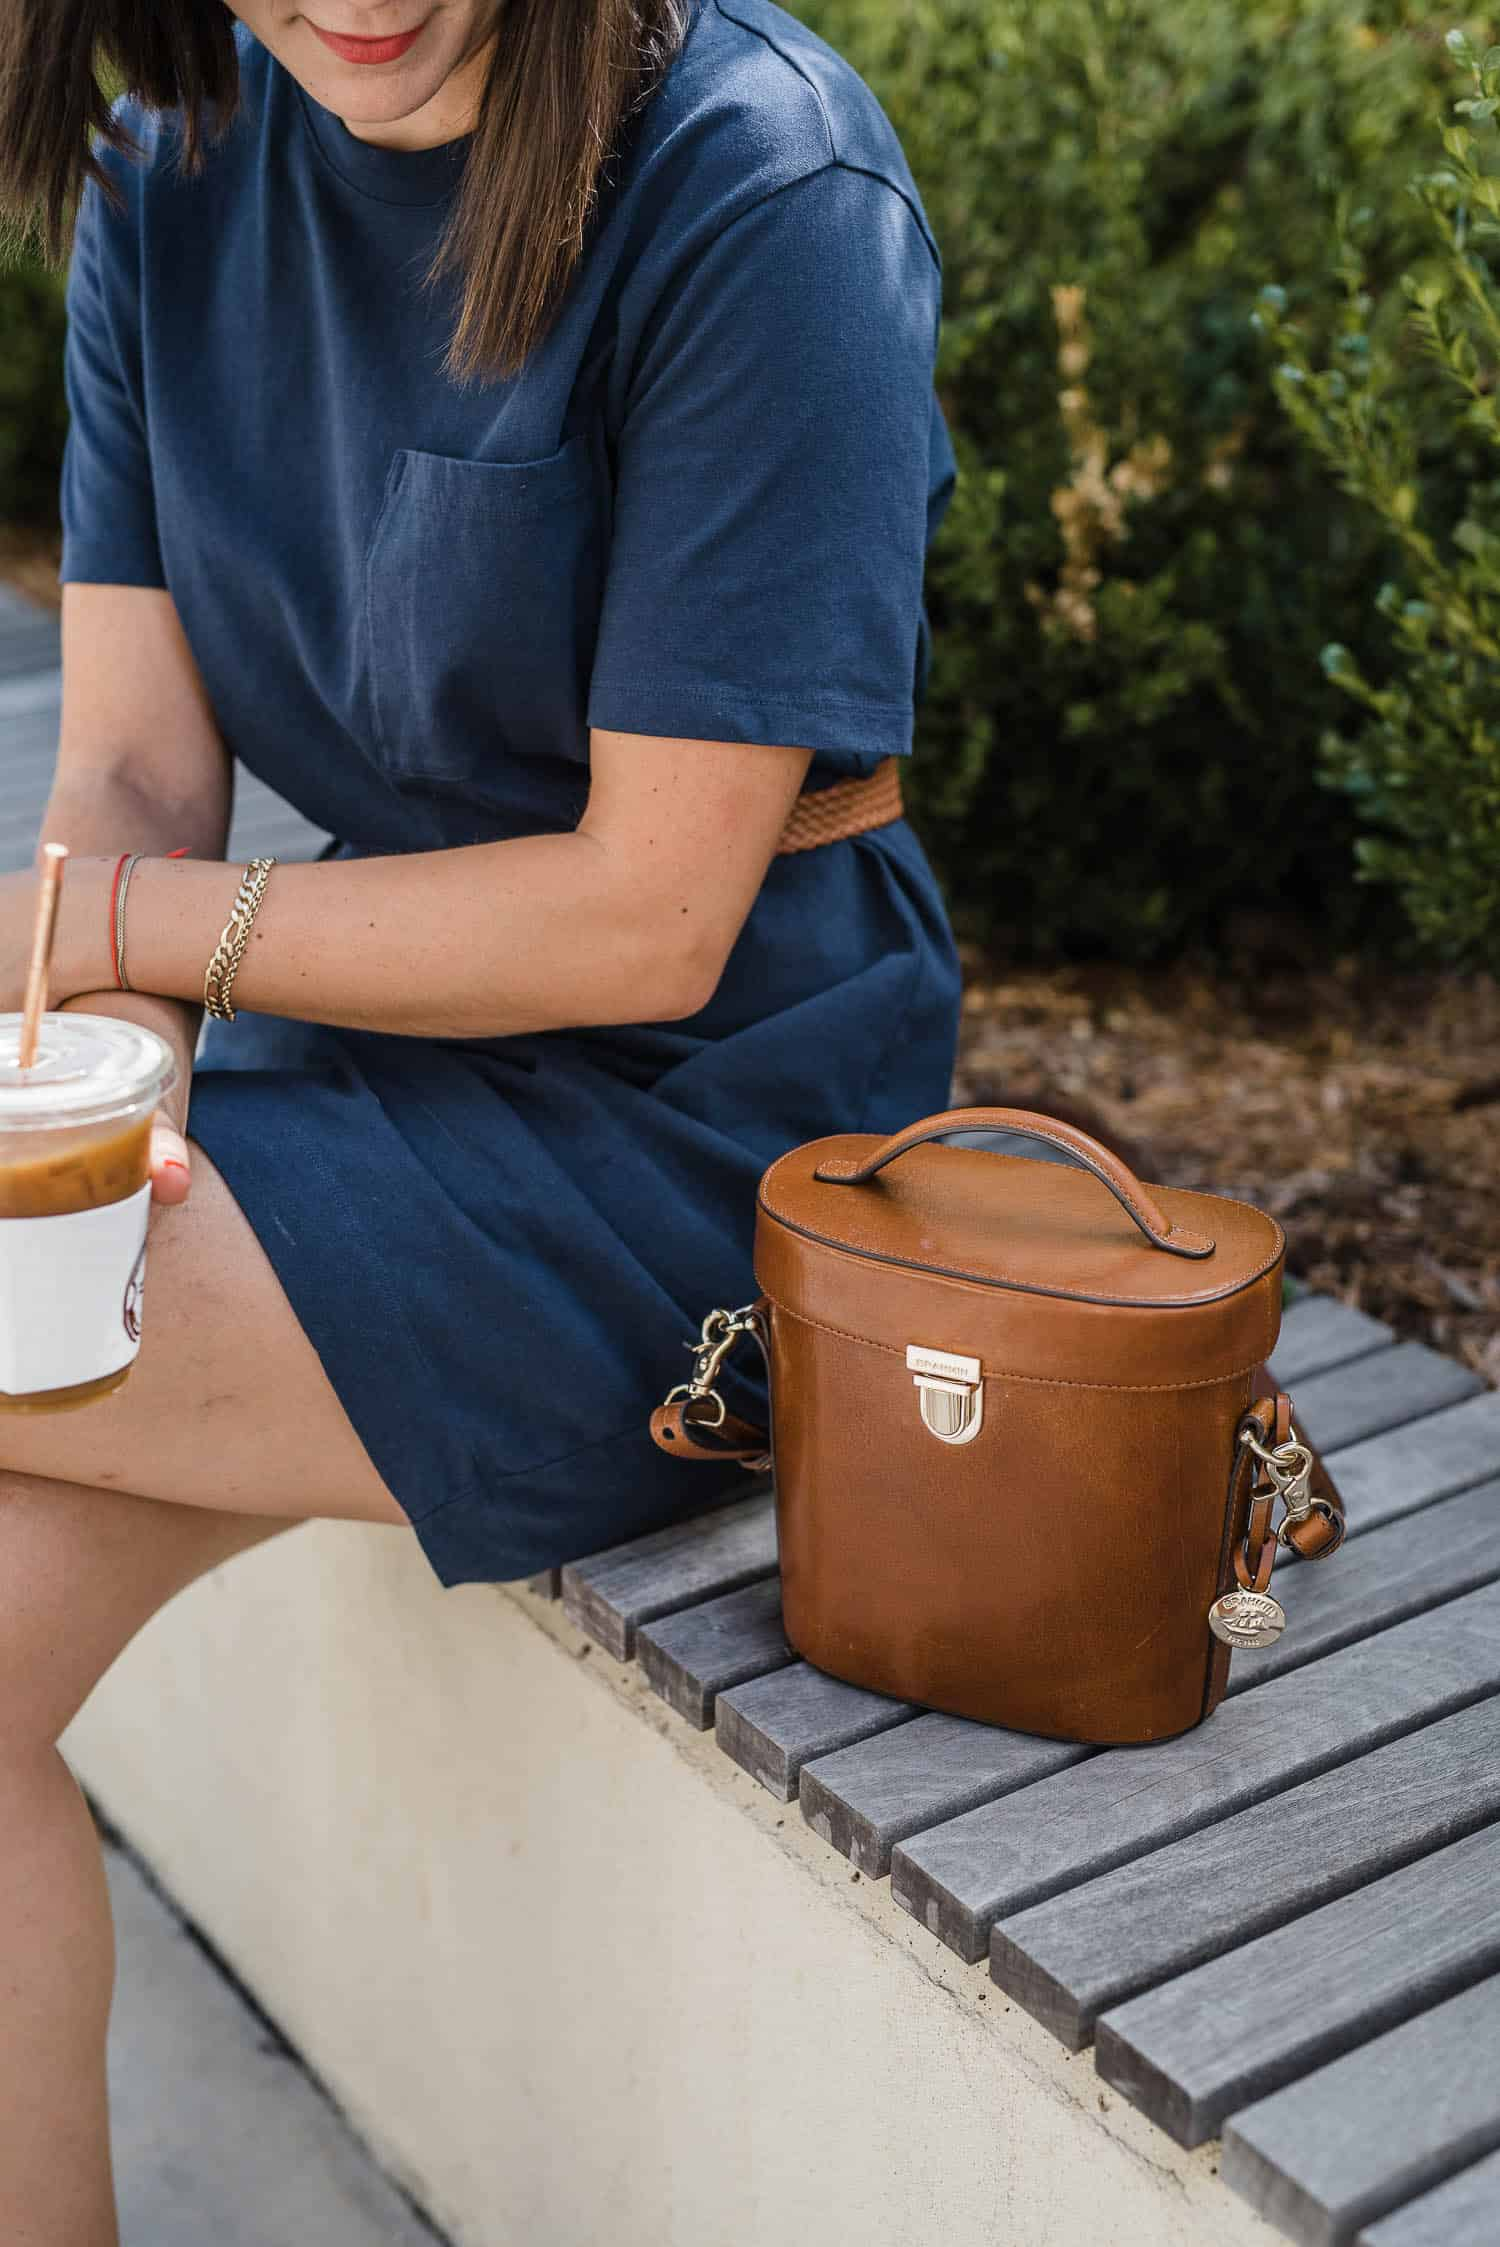 A structured bag pairs well with a belt and t-shirt dress